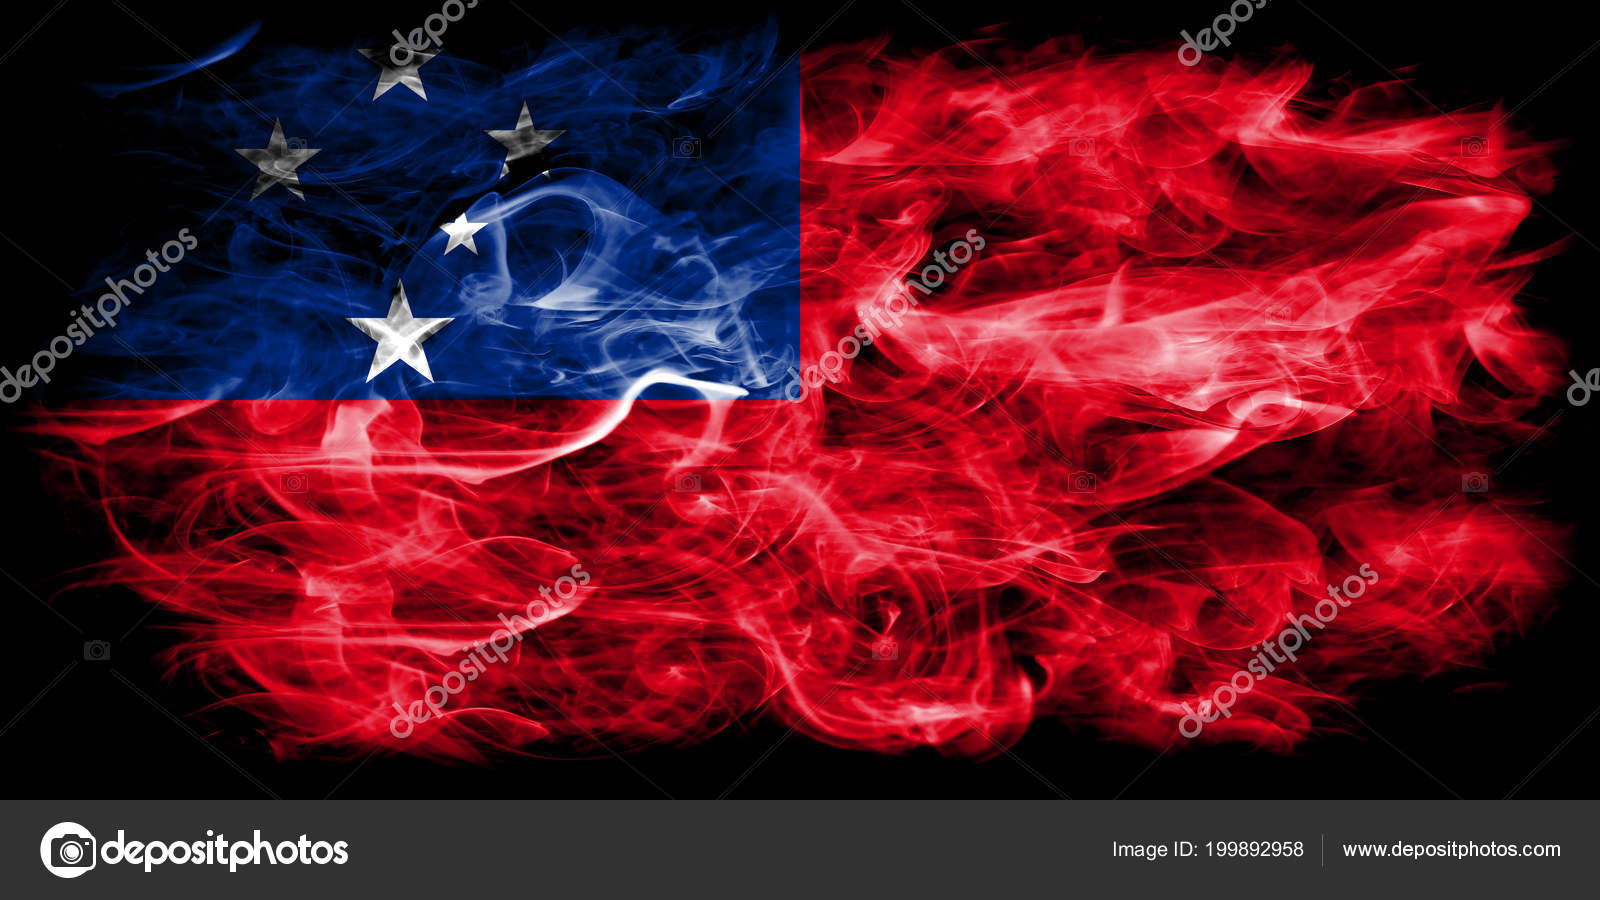 Samoan pride wallpaper Samoa Smoke Flag Black Background — Stock